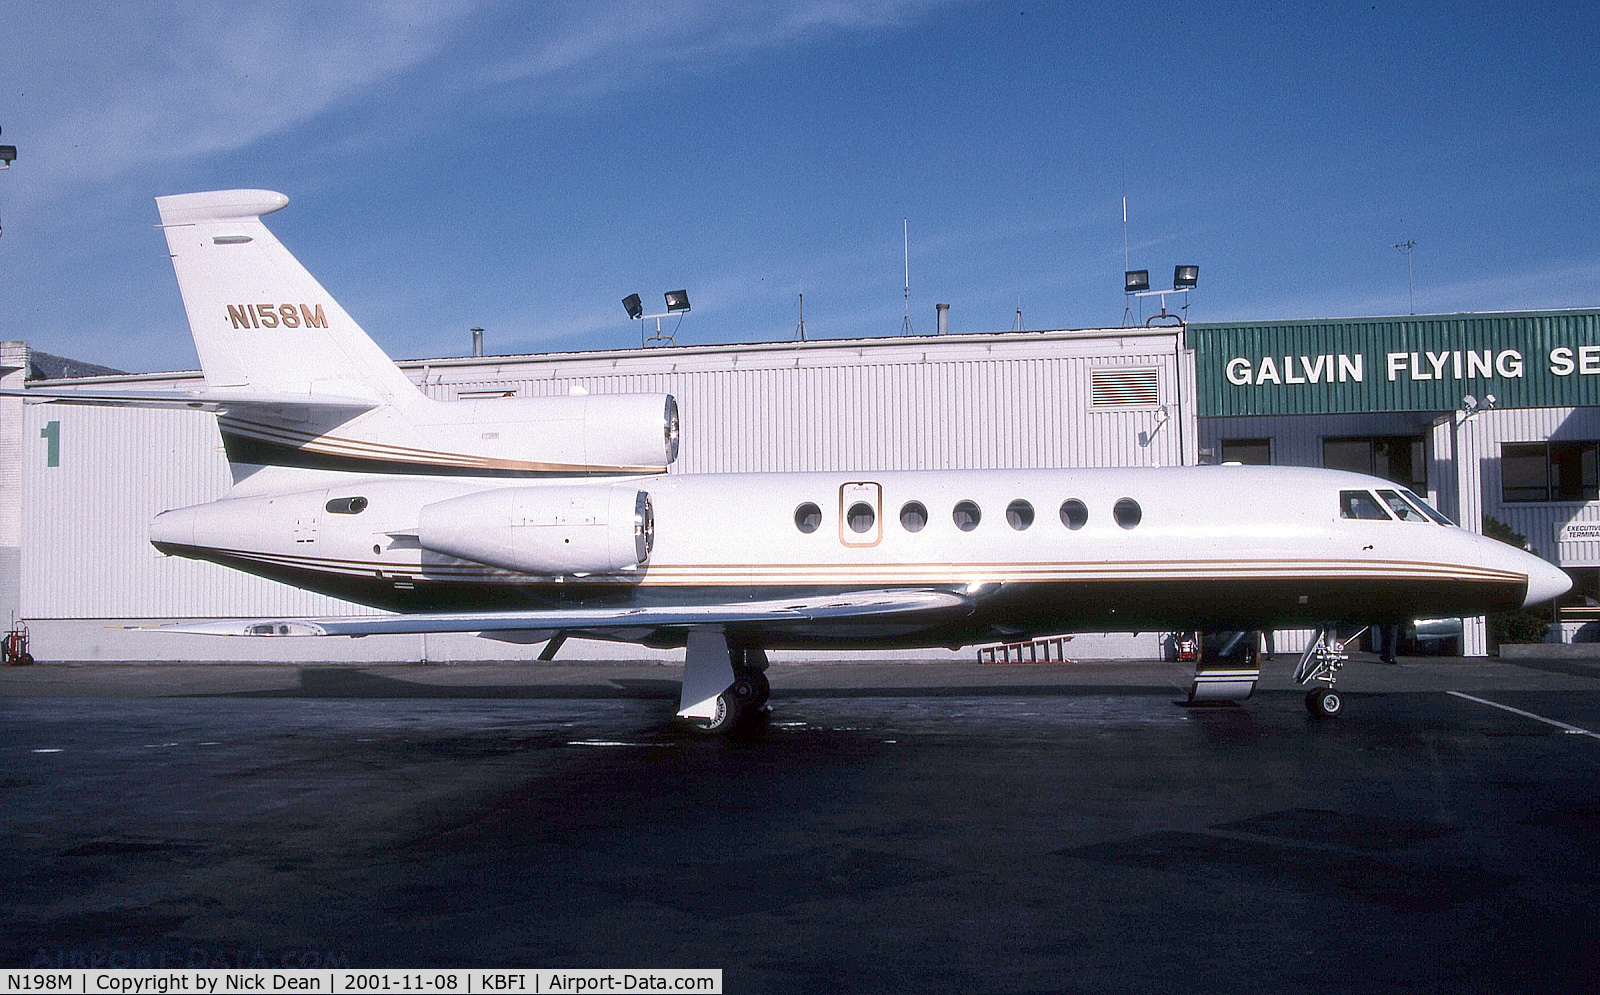 N198M, 1998 Dassault Mystere Falcon 50 C/N 273, Seen here as N158M this airframe is currently registered N198M as posted